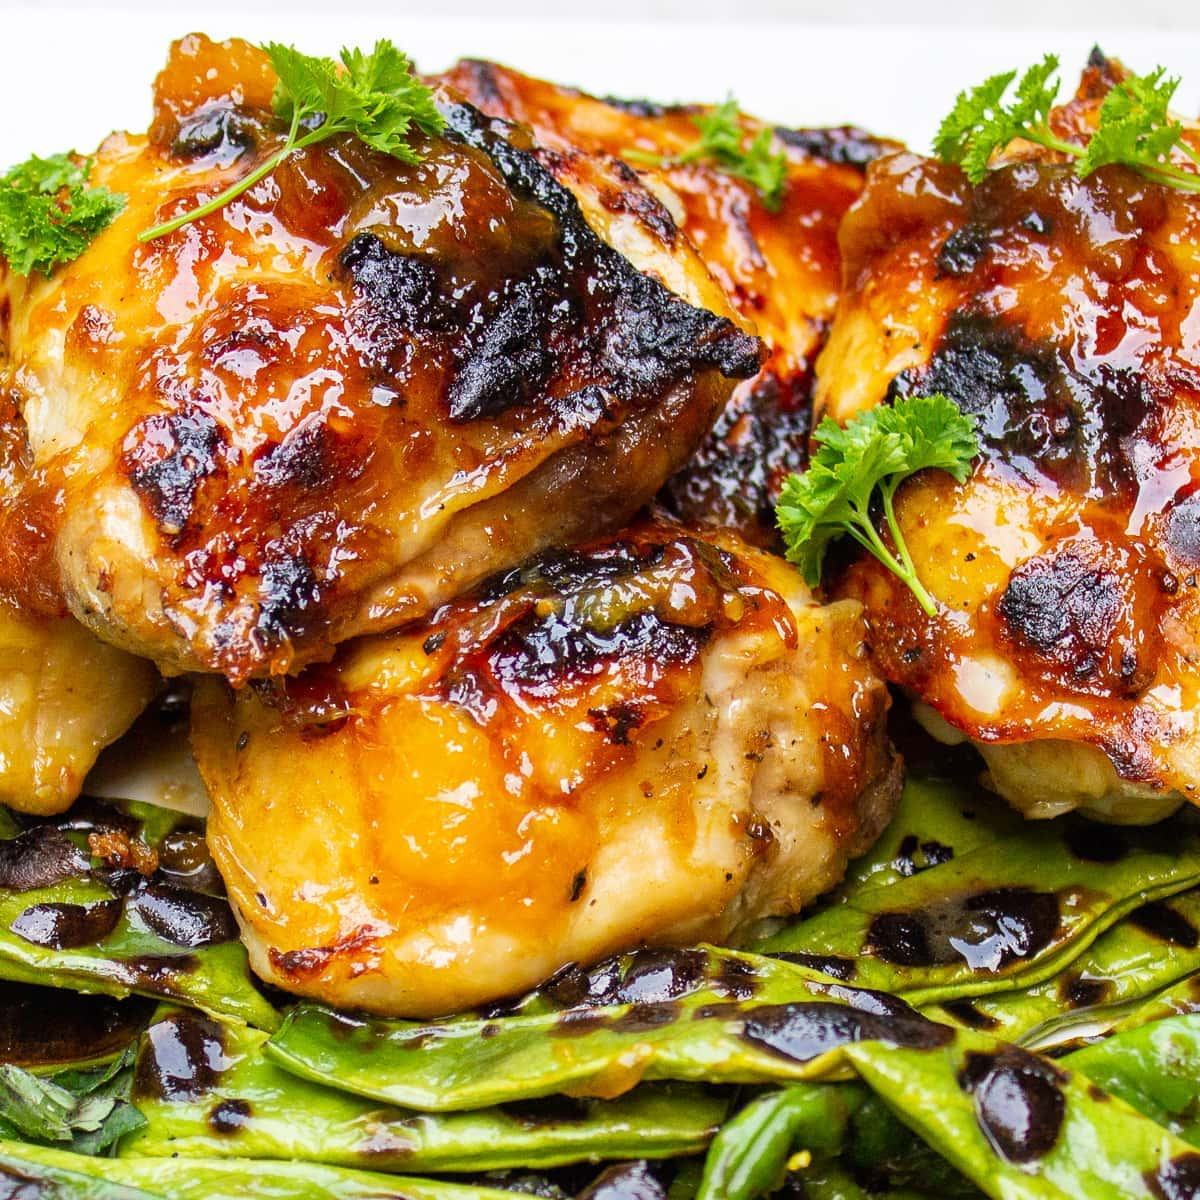 glazed chicken thighs with green beans on plate2